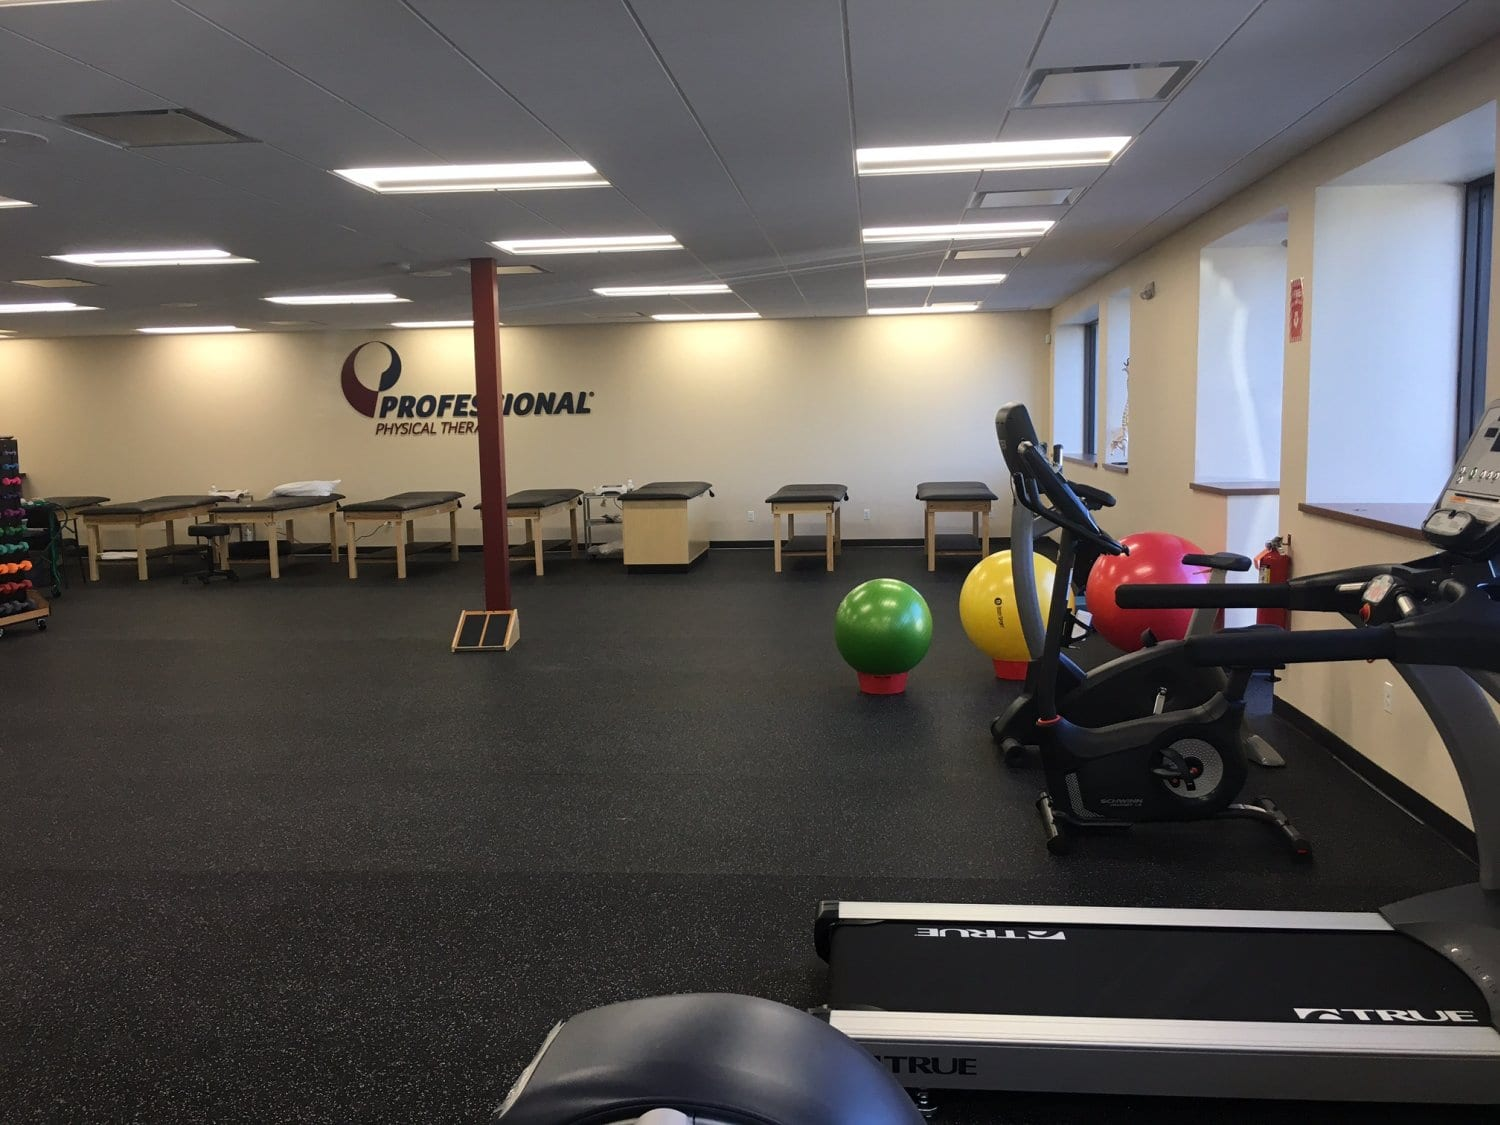 Here is a photo of our clean training room for physical & hand therapy at our clinic in Hewlett, New York.